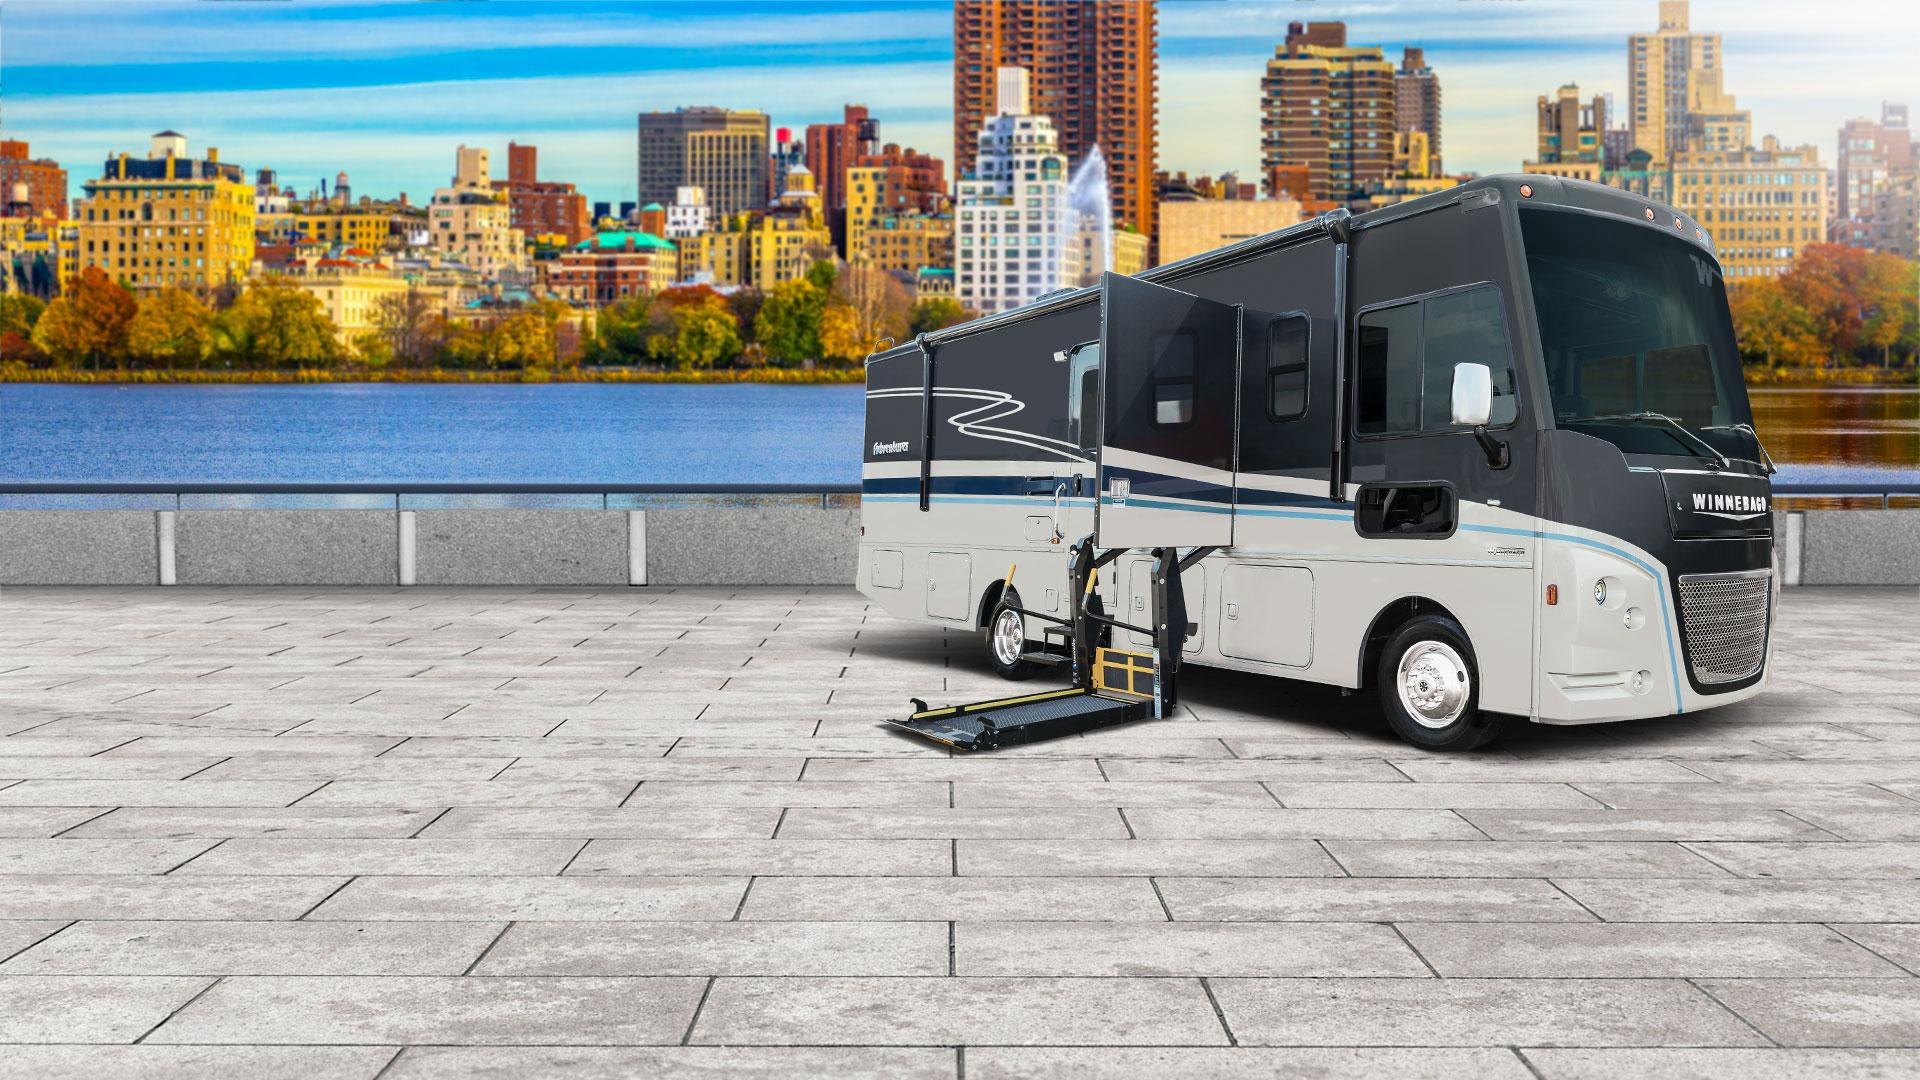 /Files/Images/Winnebago/Products/2020/adventurer-ae/AD-AE-Banners-Web-20.jpg